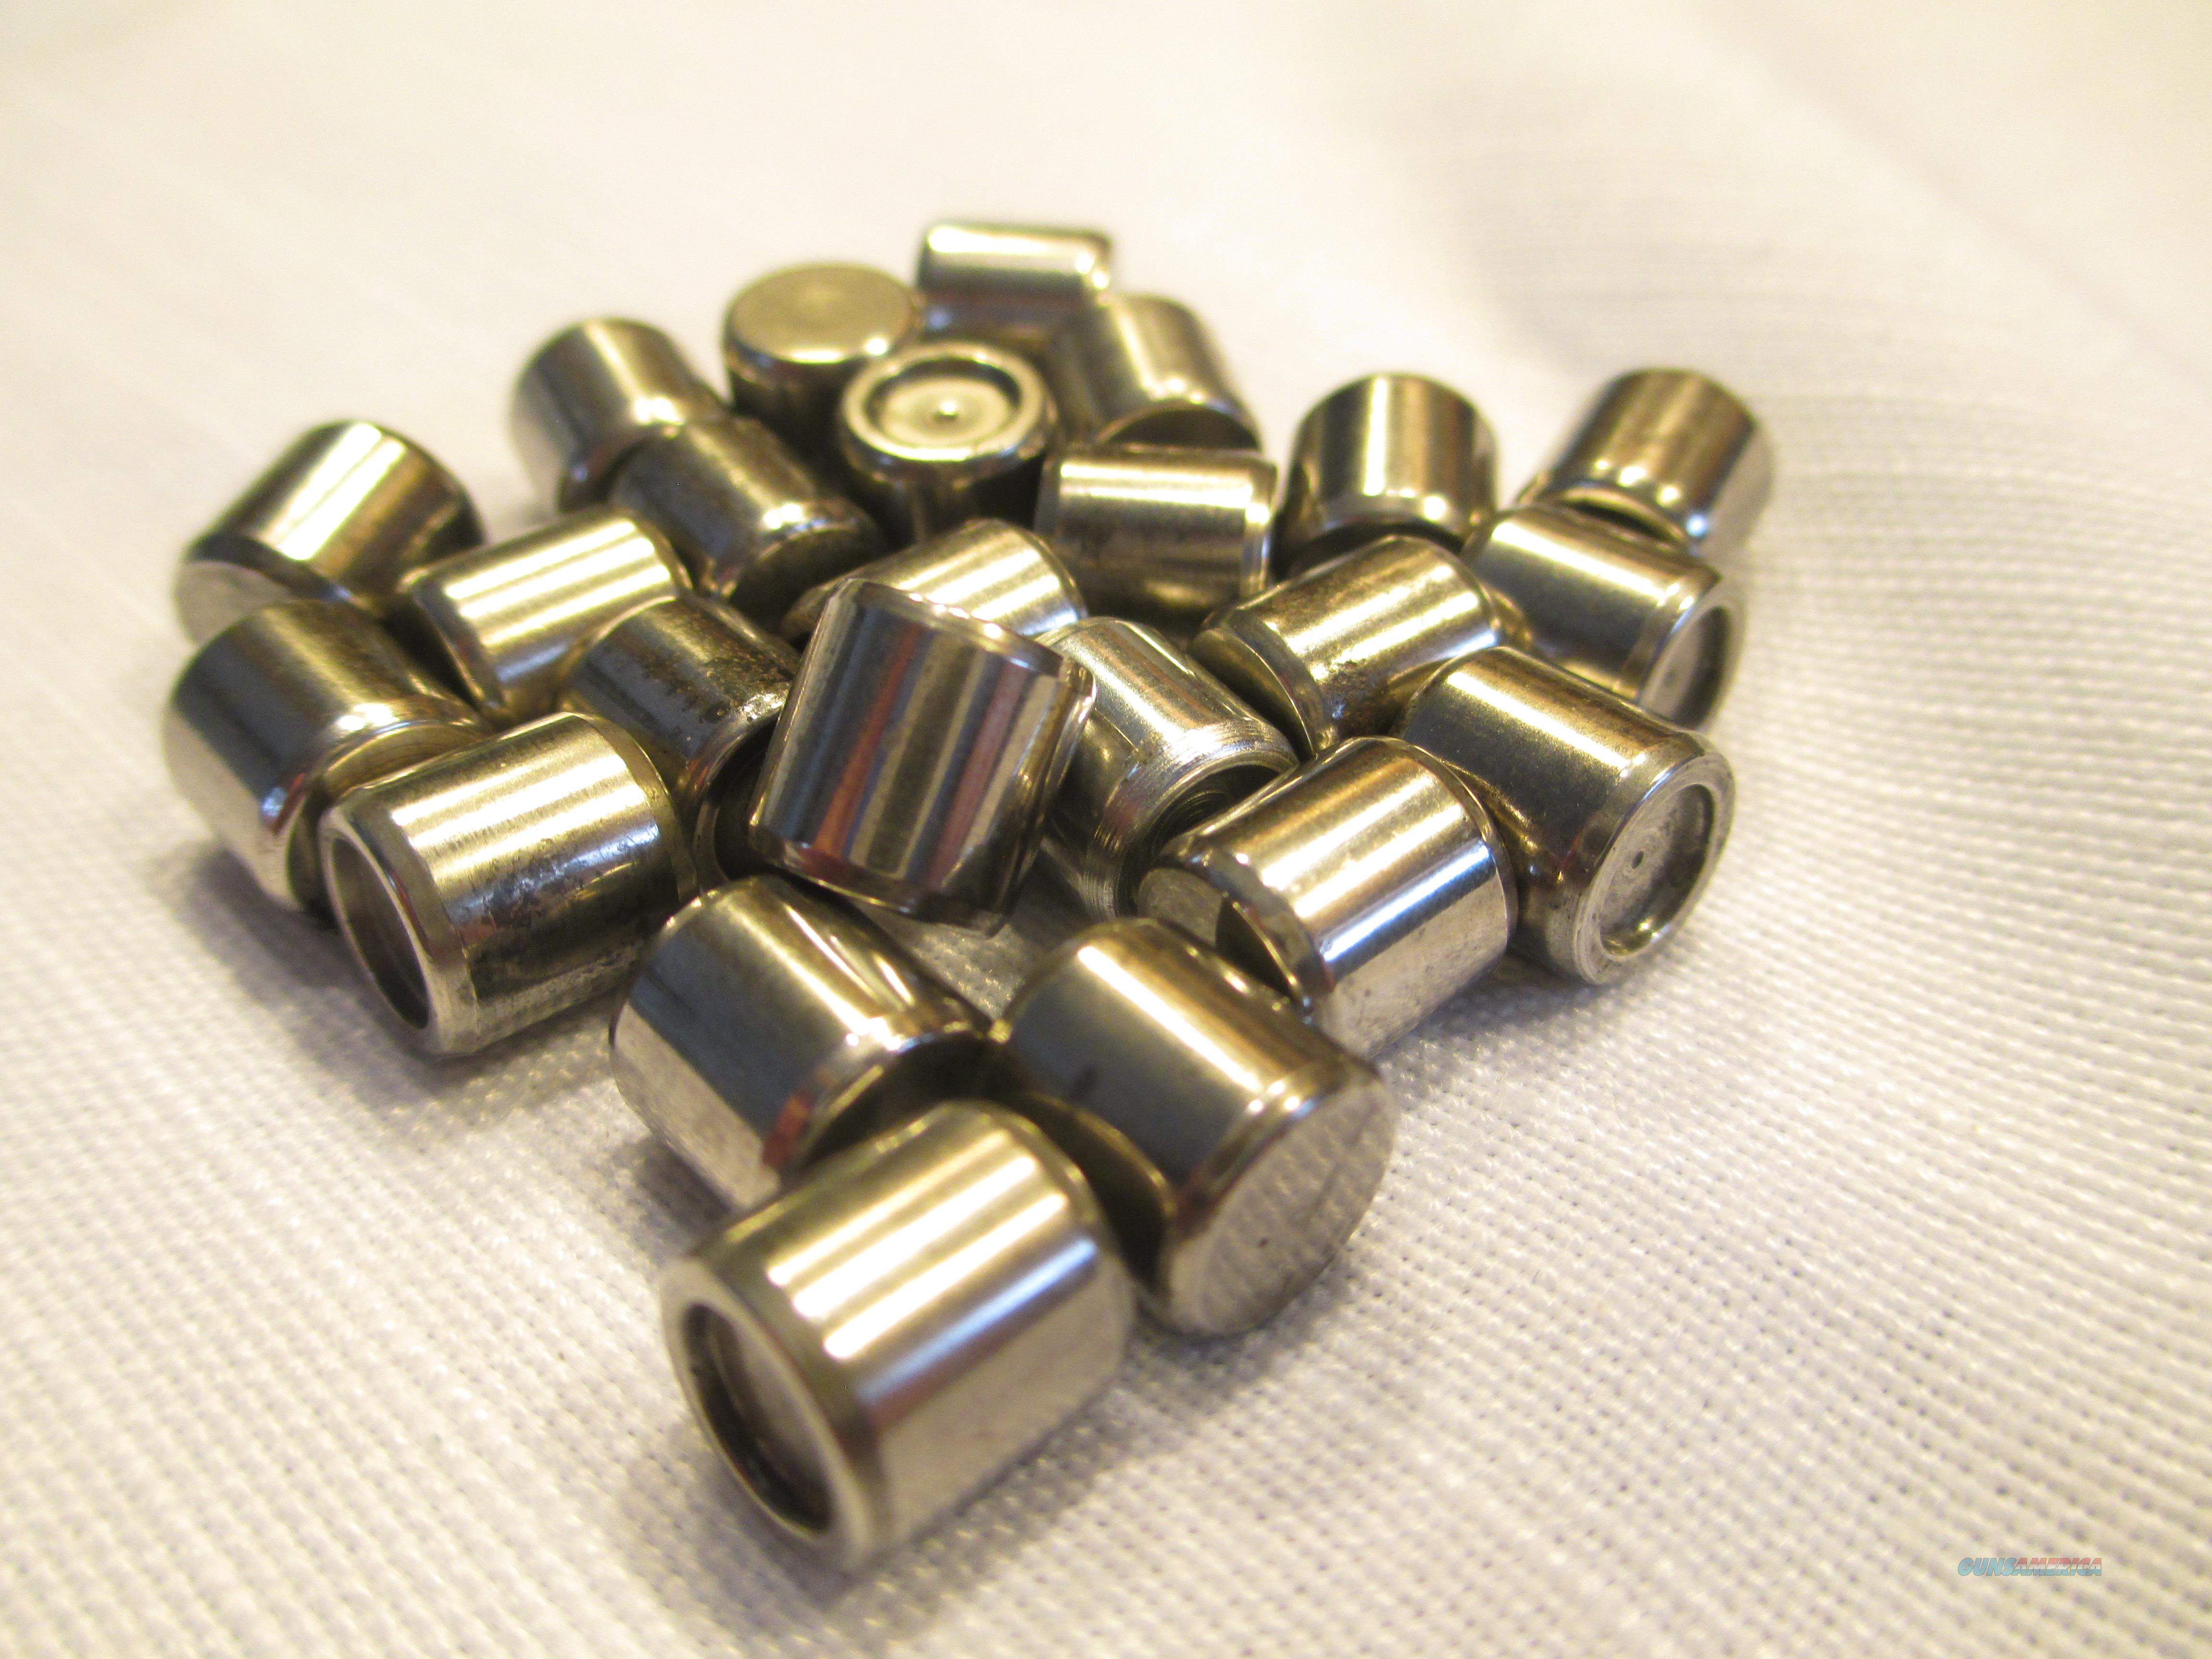 HK91 G3 BOLT HEAD ROLLERS 8PK. ...ALSO PERFECT FOR CETME  Non-Guns > Gun Parts > Military - Foreign